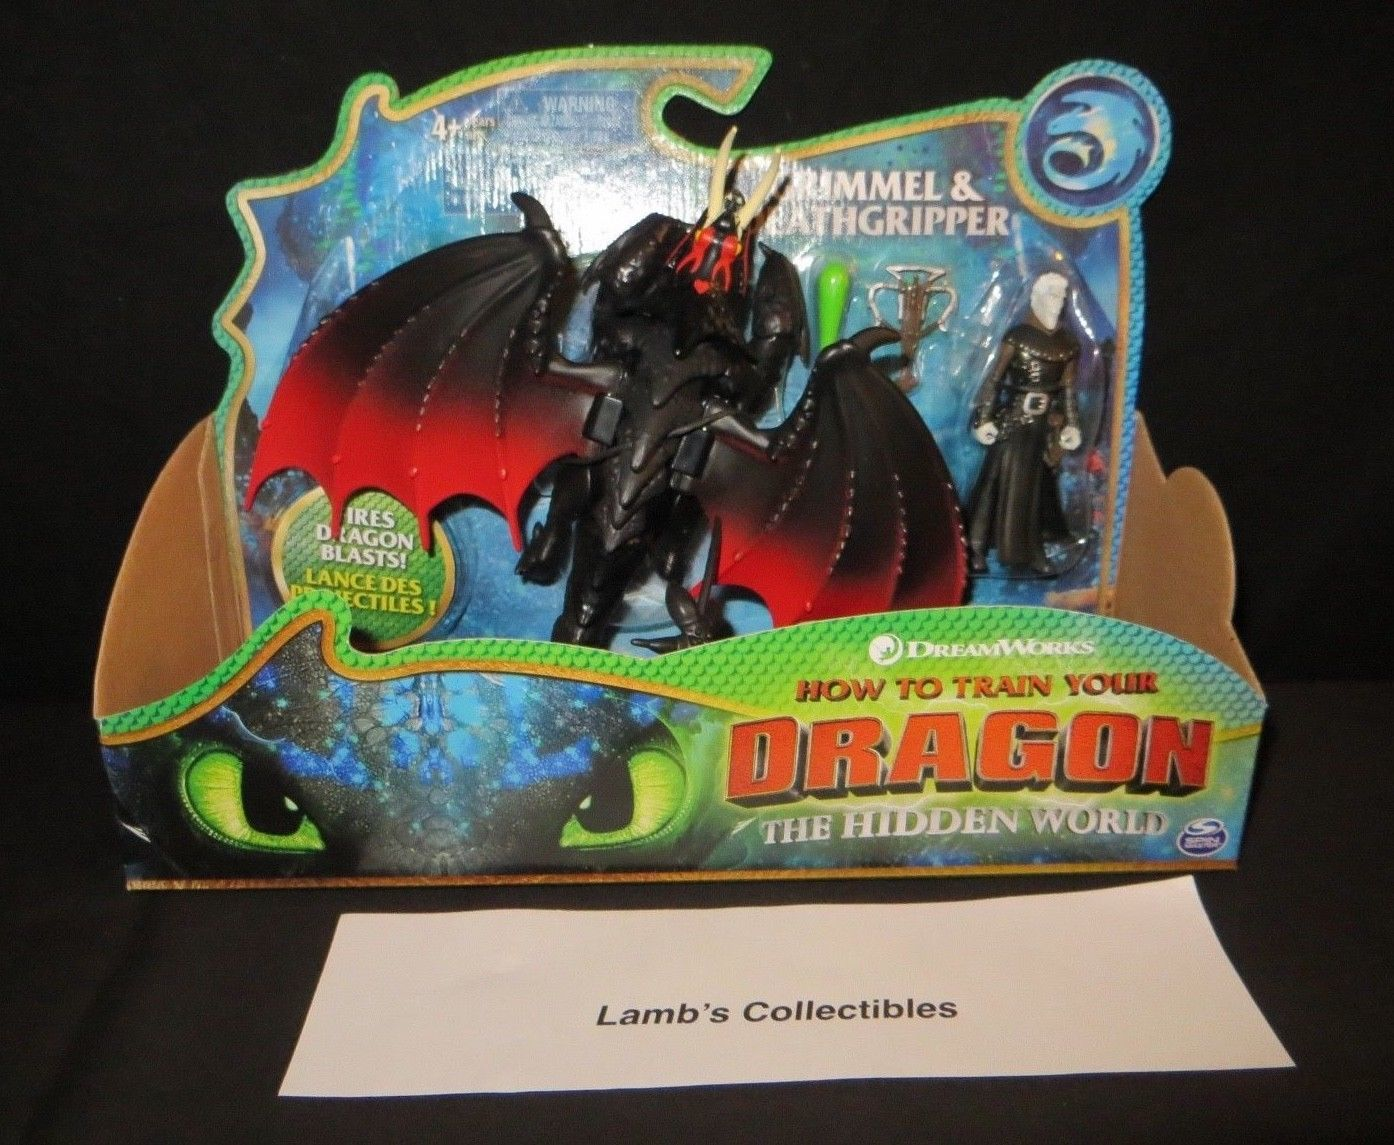 Primary image for How to train your Dragon 3 The Hidden World Grimmel & Deathgrip dragon figures